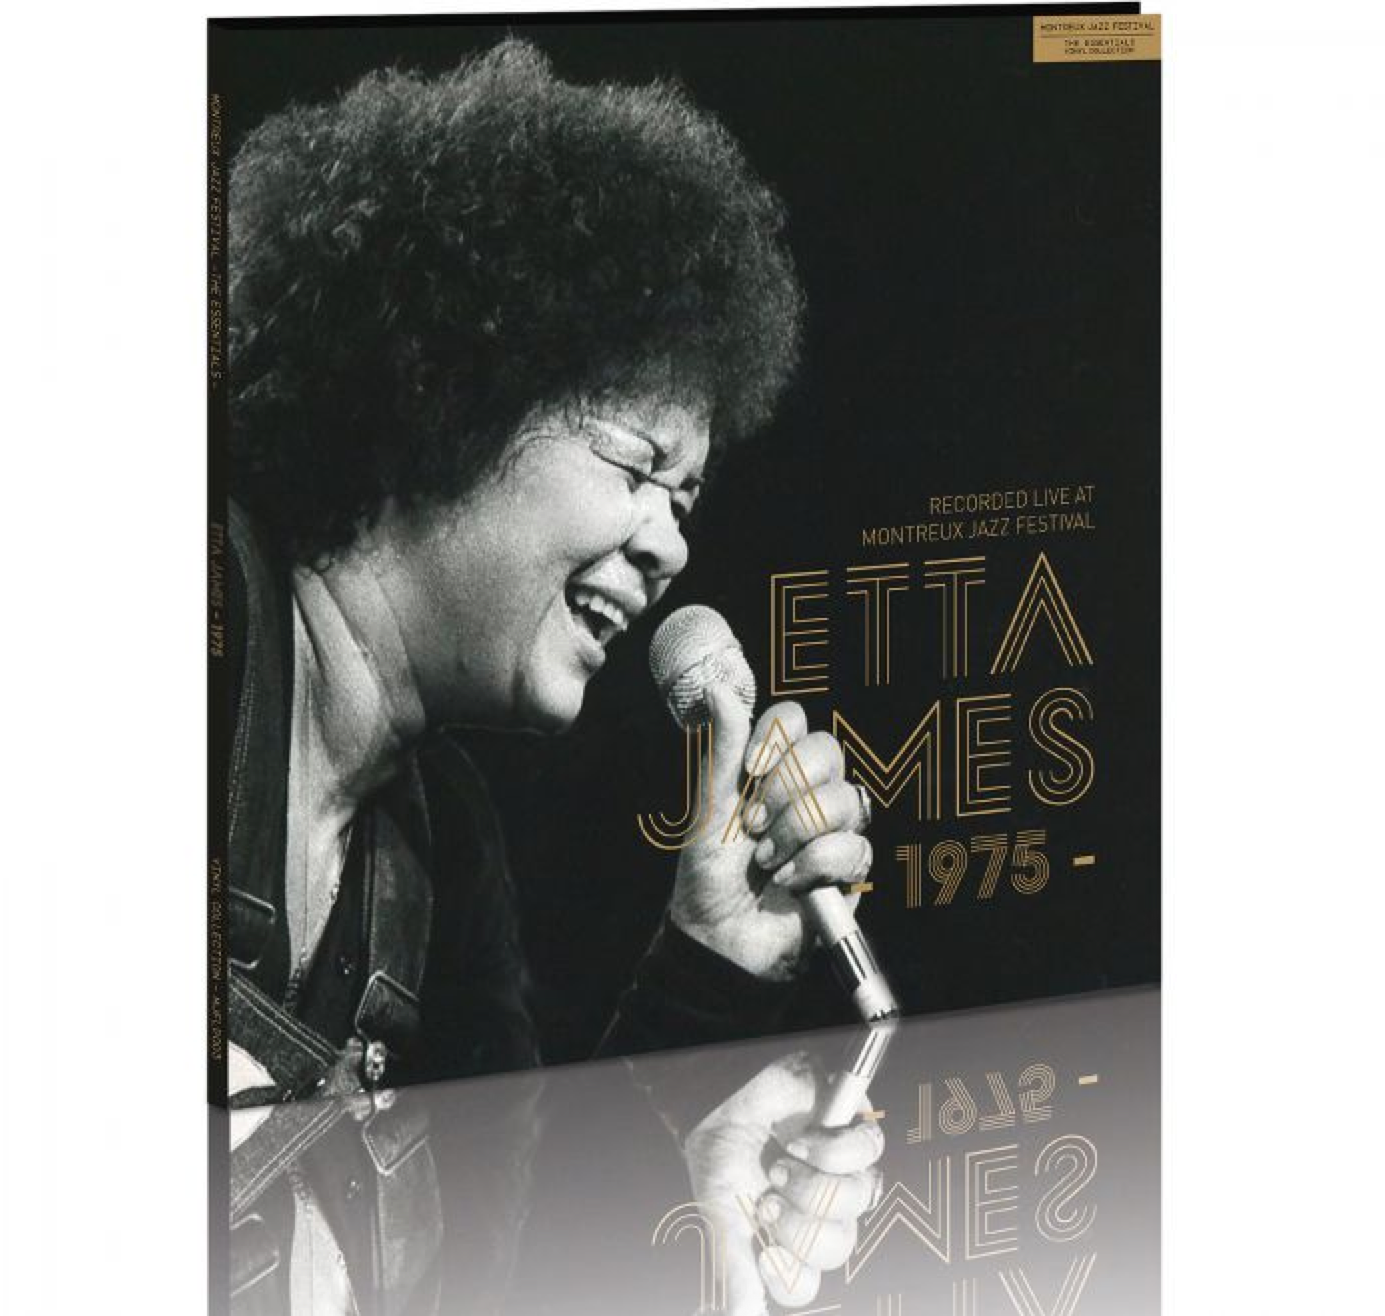 THE ESSENTIALS – Vinyl Collection    Etta James - 1975  - Recorded live at the Montreux Jazz Festival, 1975